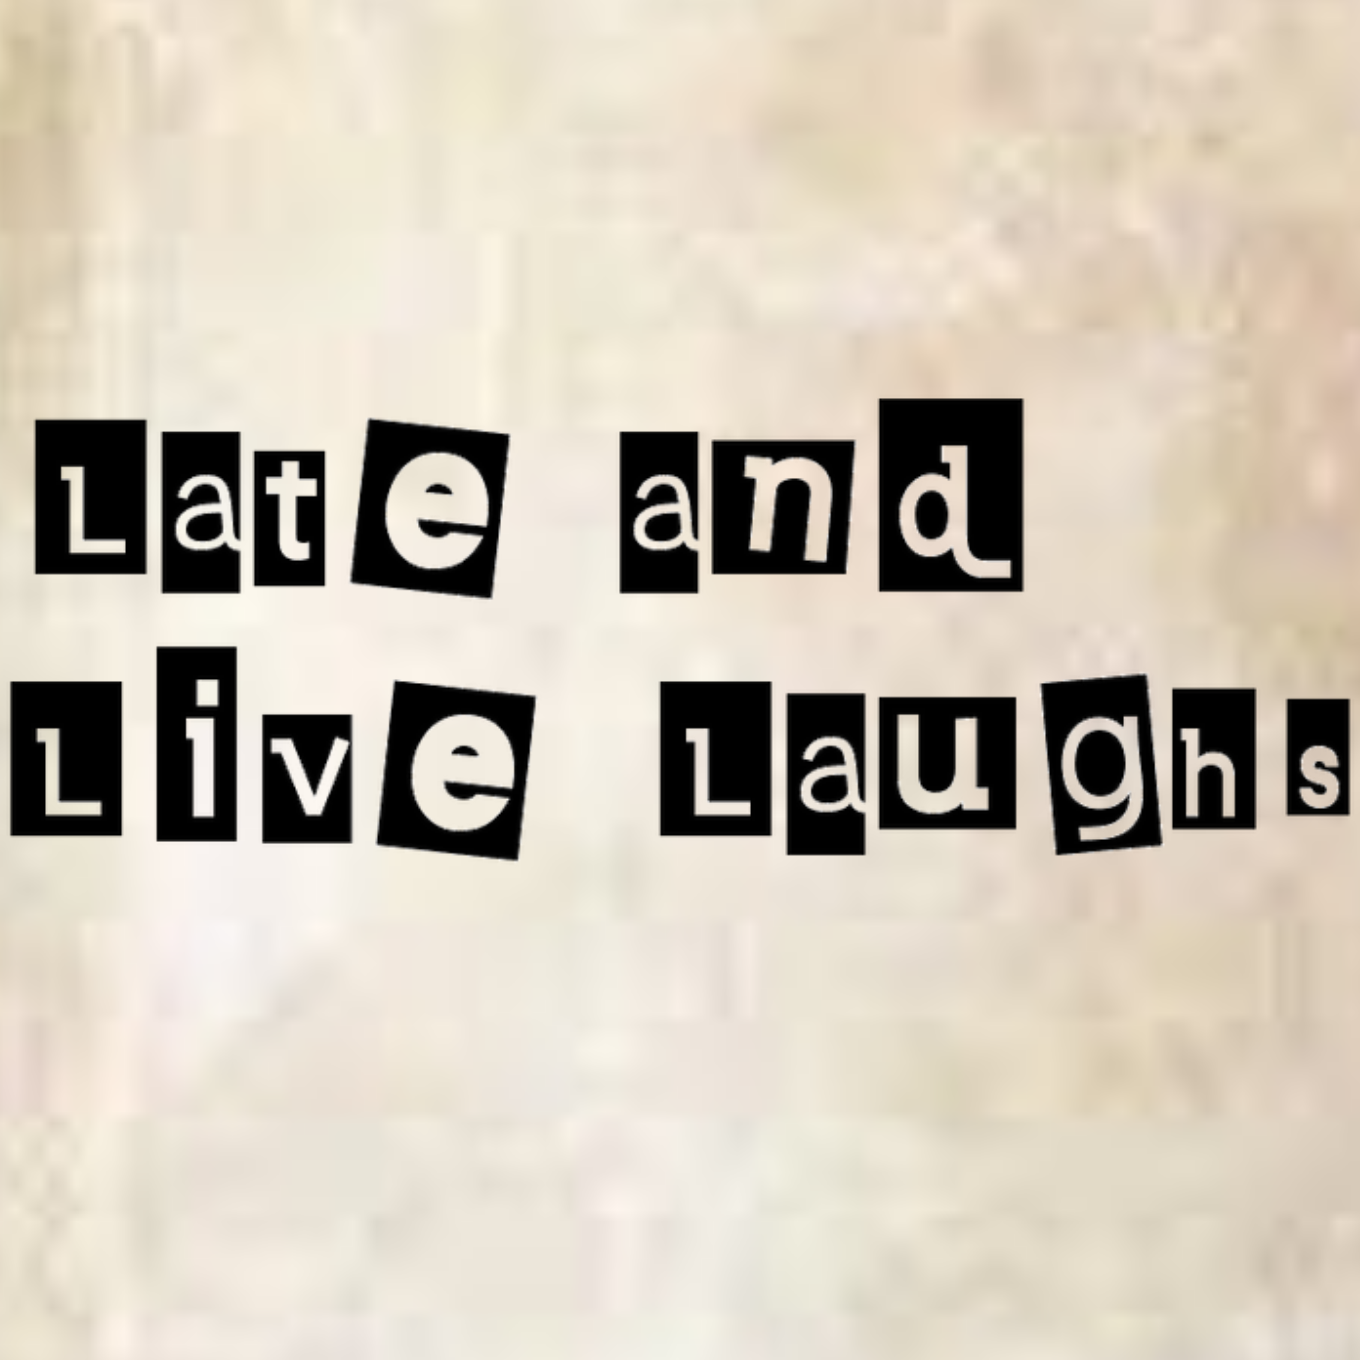 Late and Live Laughs    10:45pm - The Royal Chamber